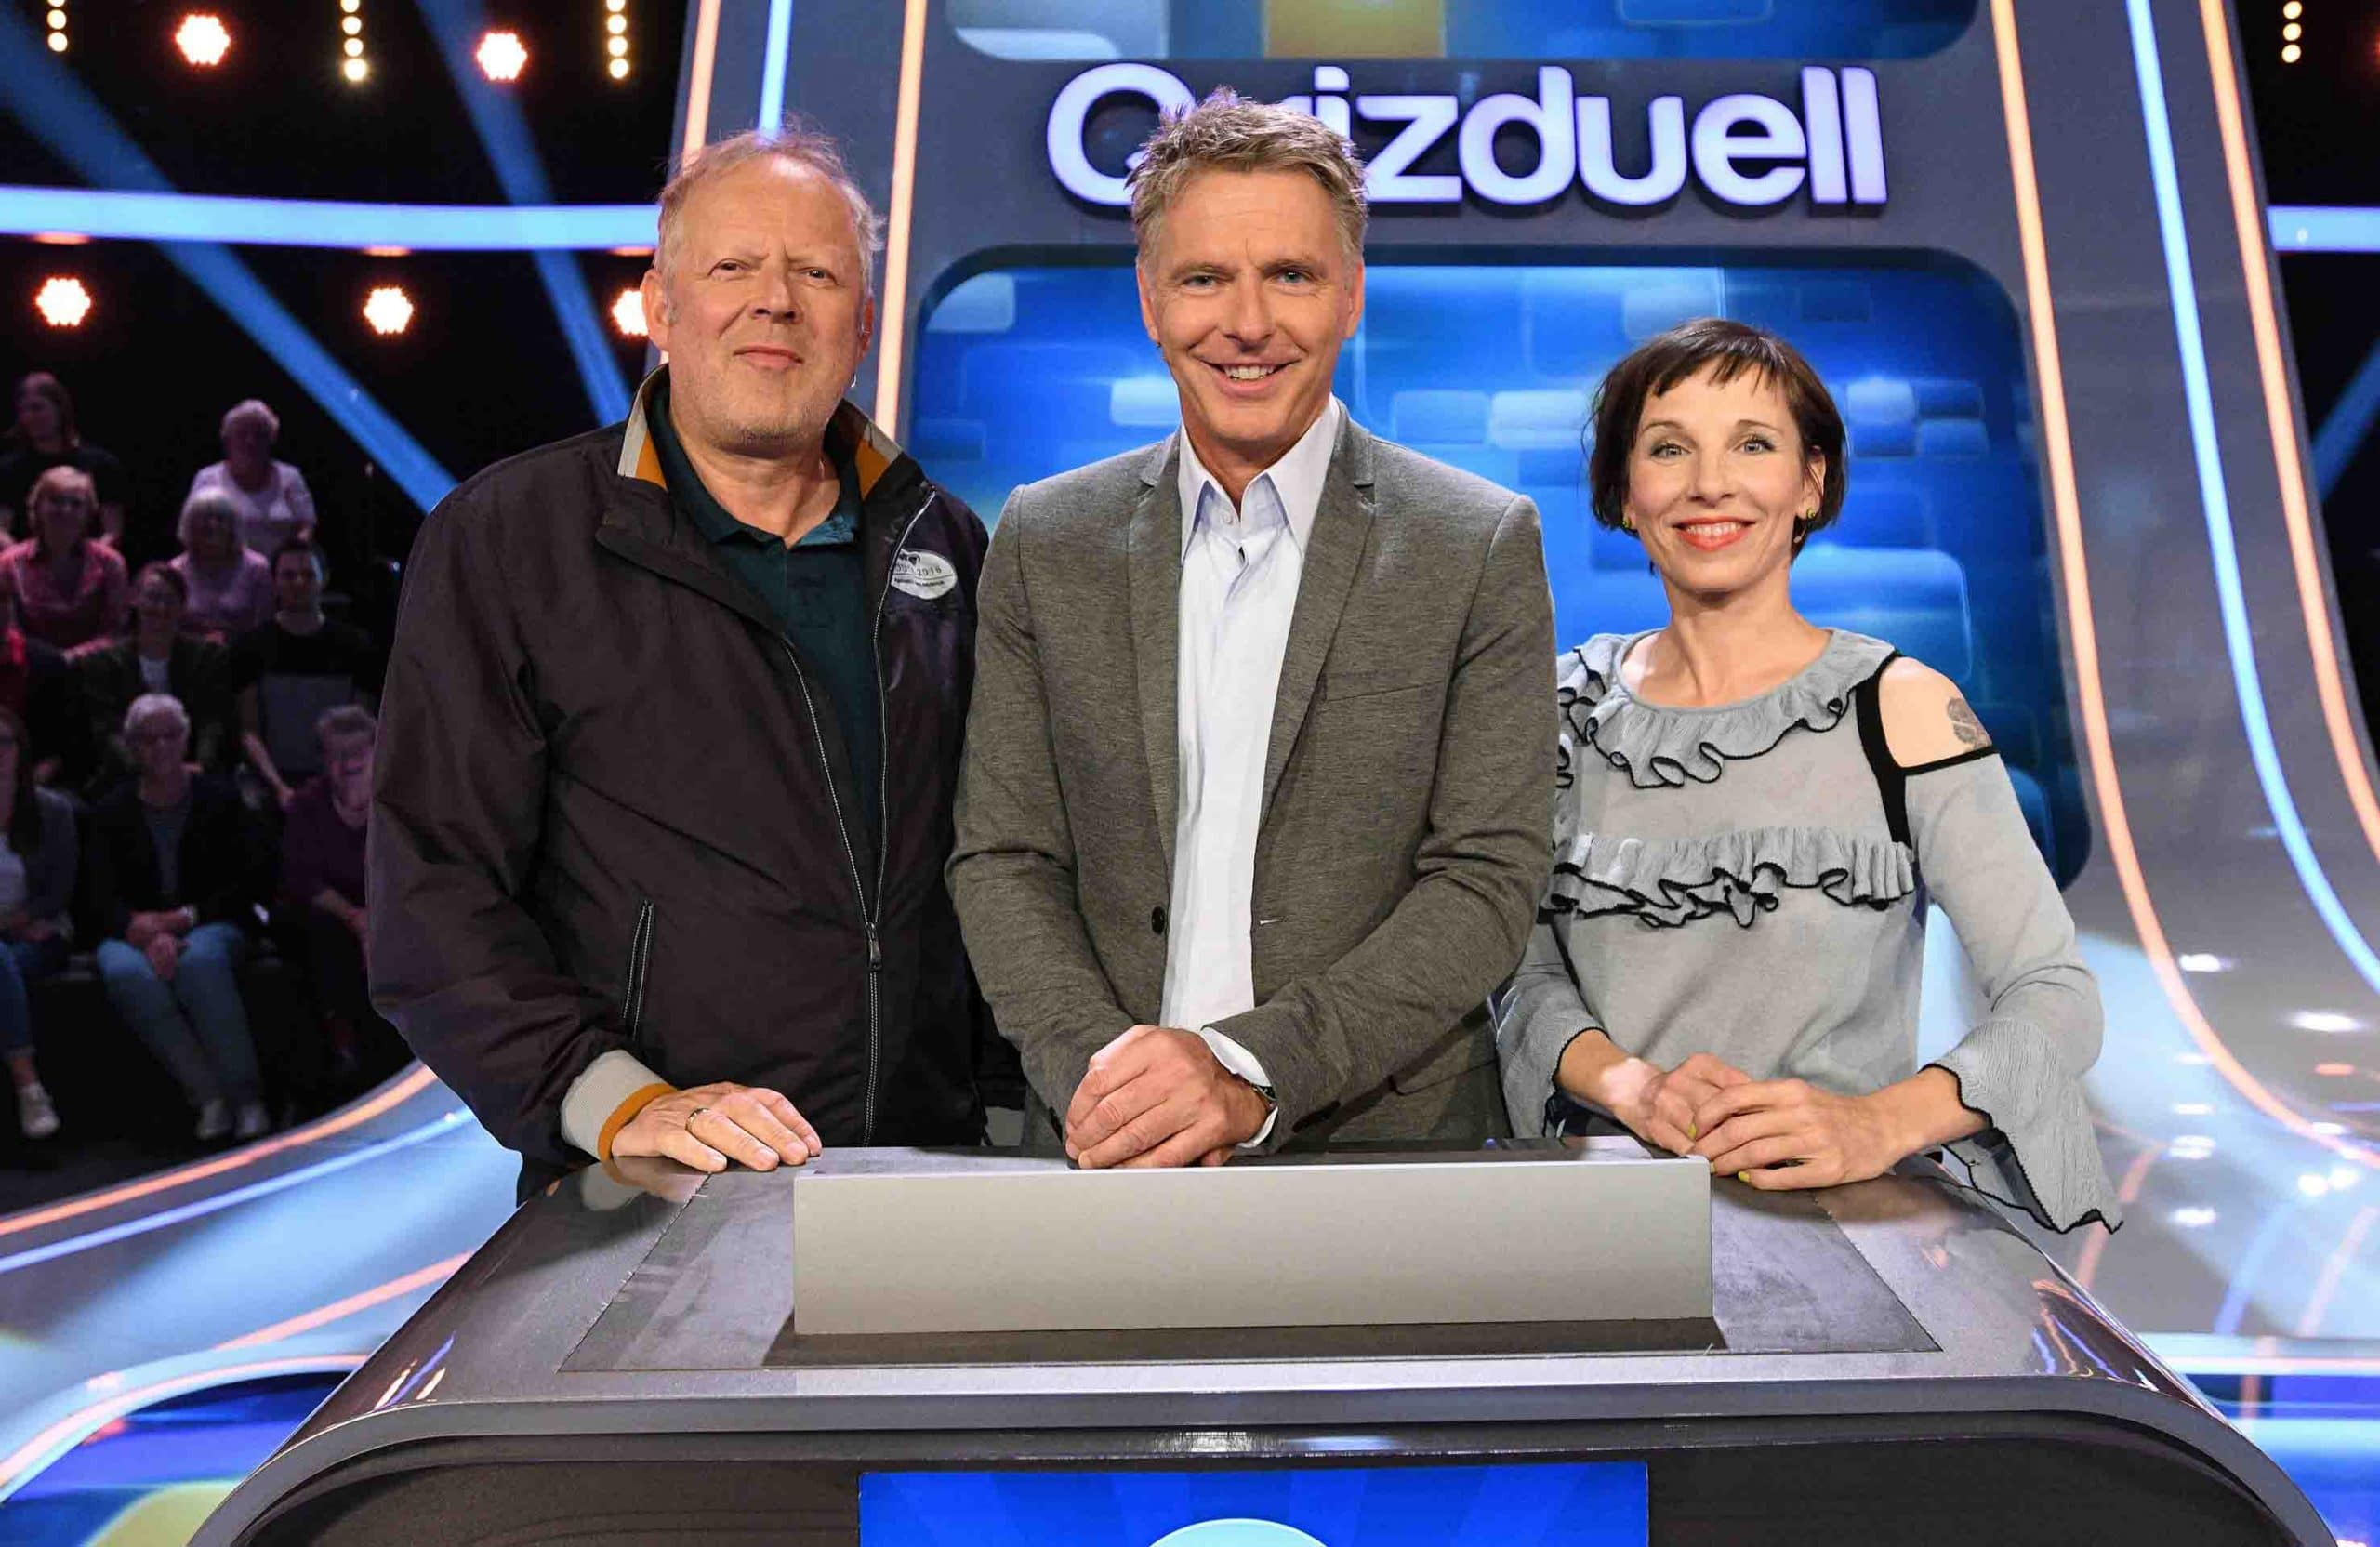 Quizduell-Olymp, Folge 280